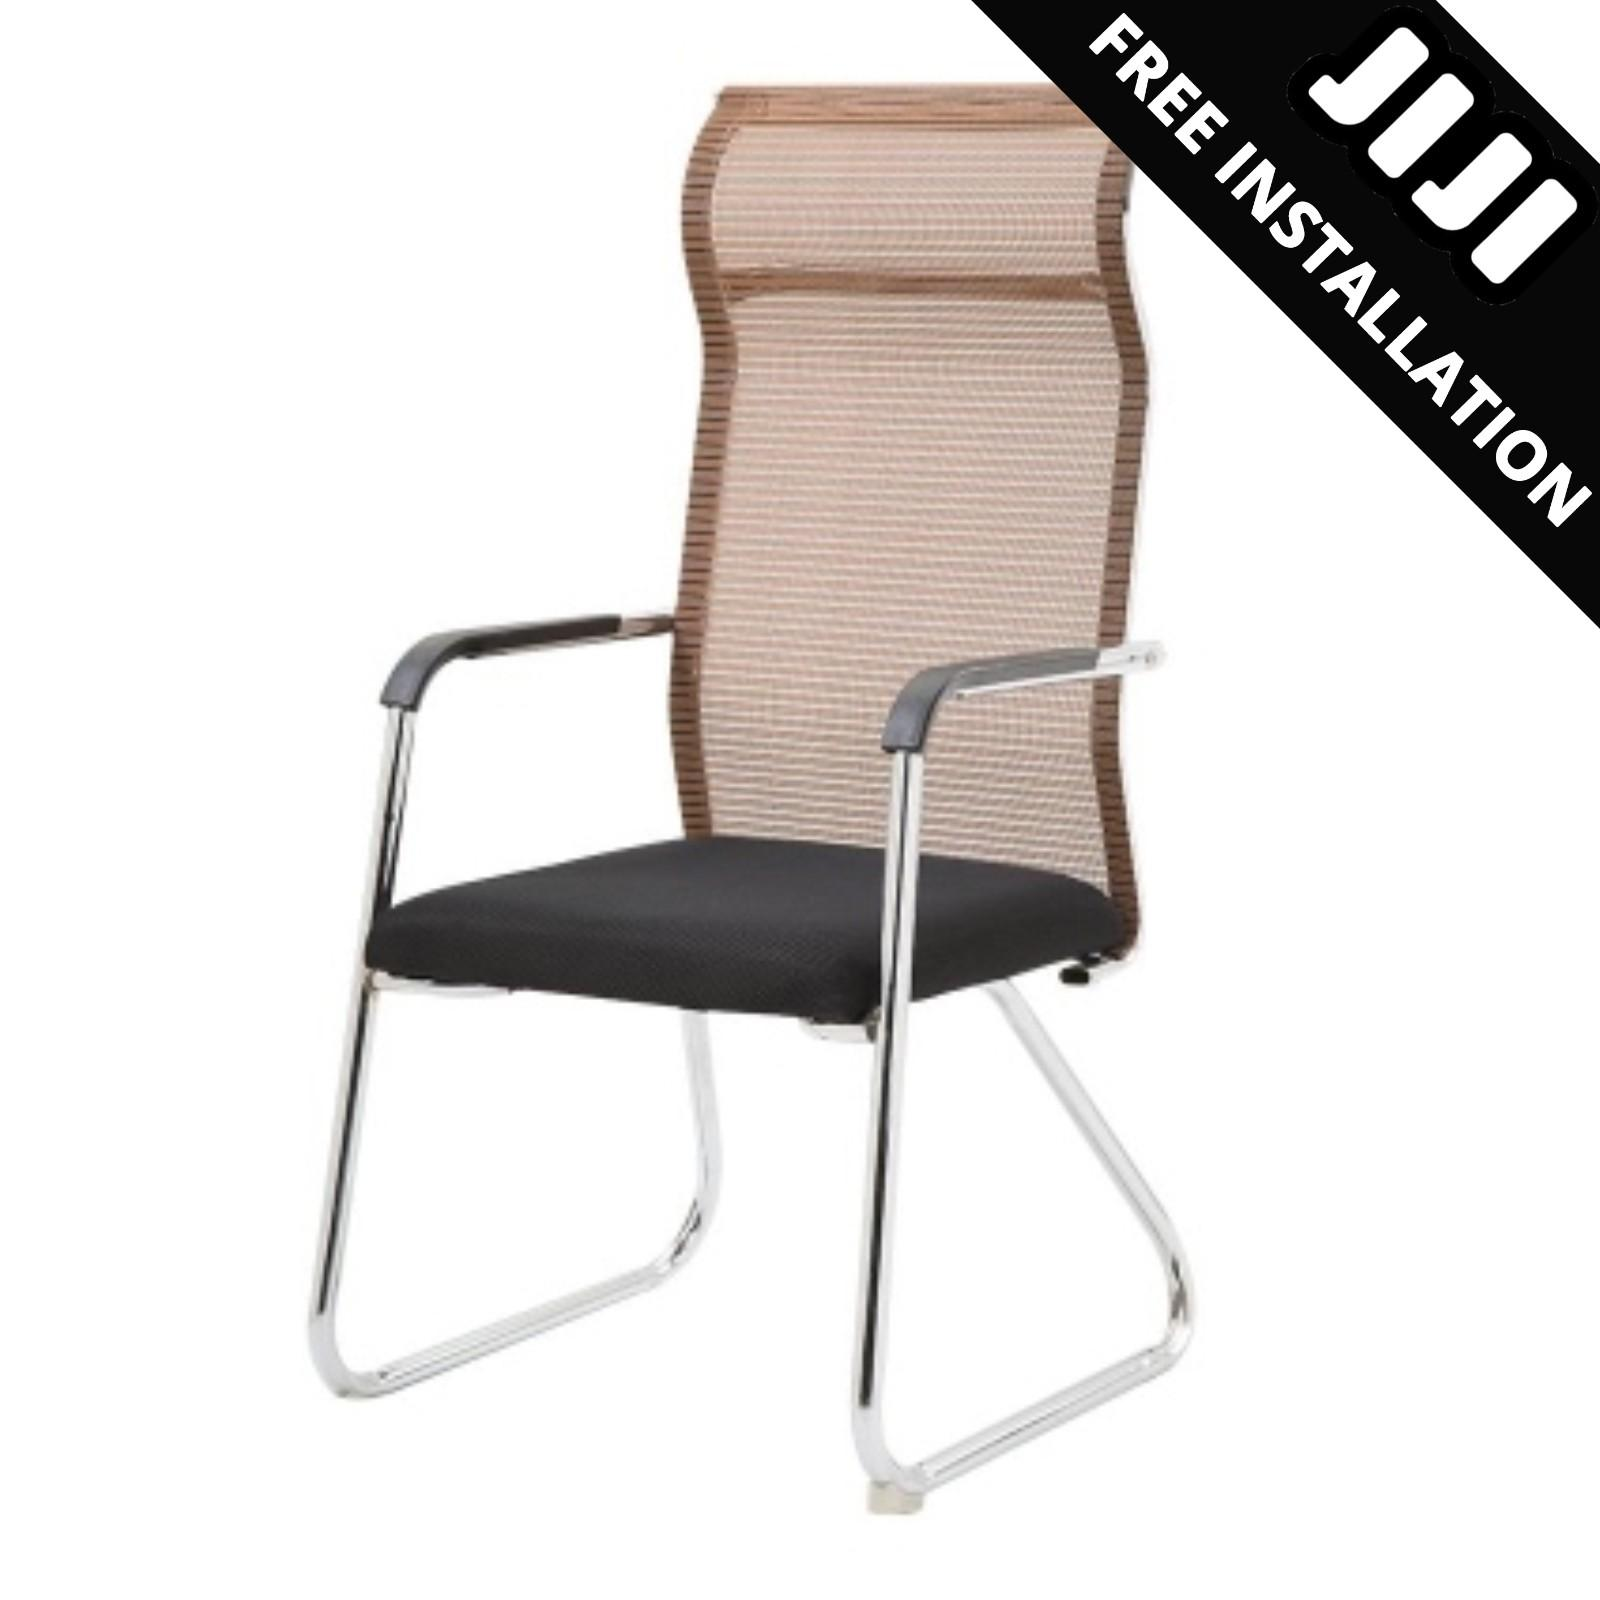 JIJI Manager Office Chair Stationary (MESH) (Free Installation) - (Home Office Chair) Office chairs /Study chair/Gaming chair/Ergonomic/ Free 12 Months Warranty (SG) Singapore